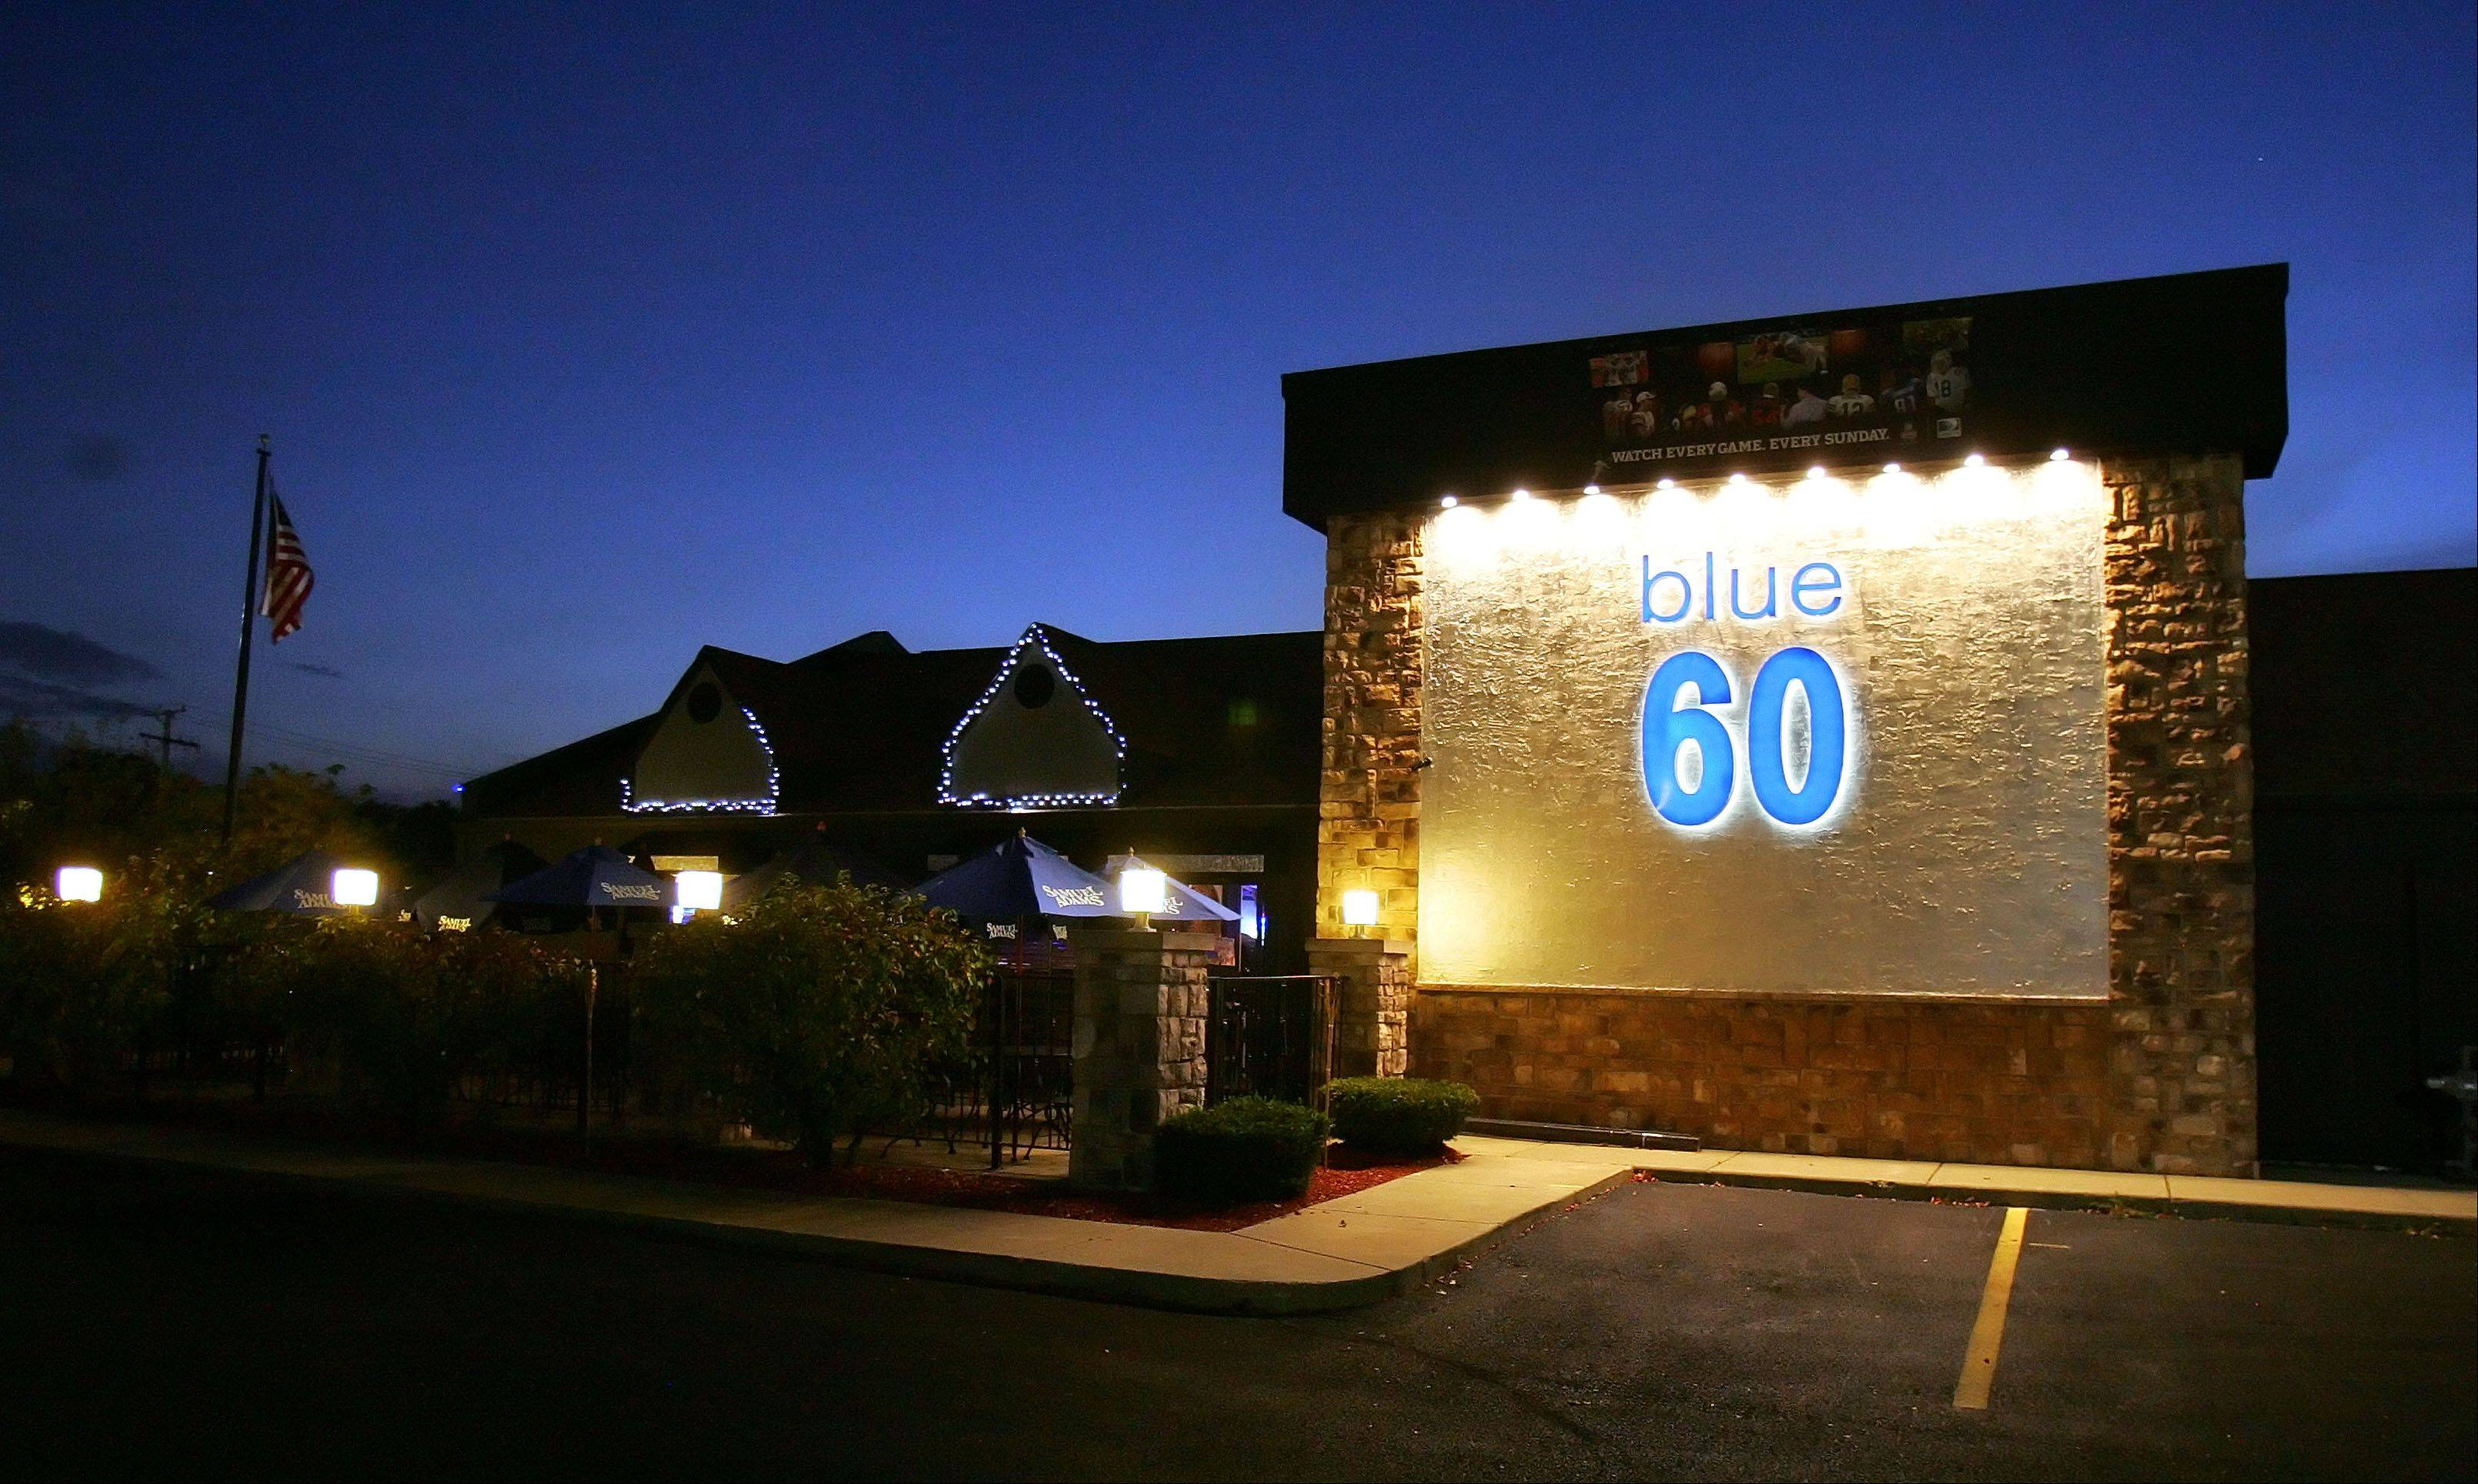 Blue 60 opened late this summer in Mundelein.